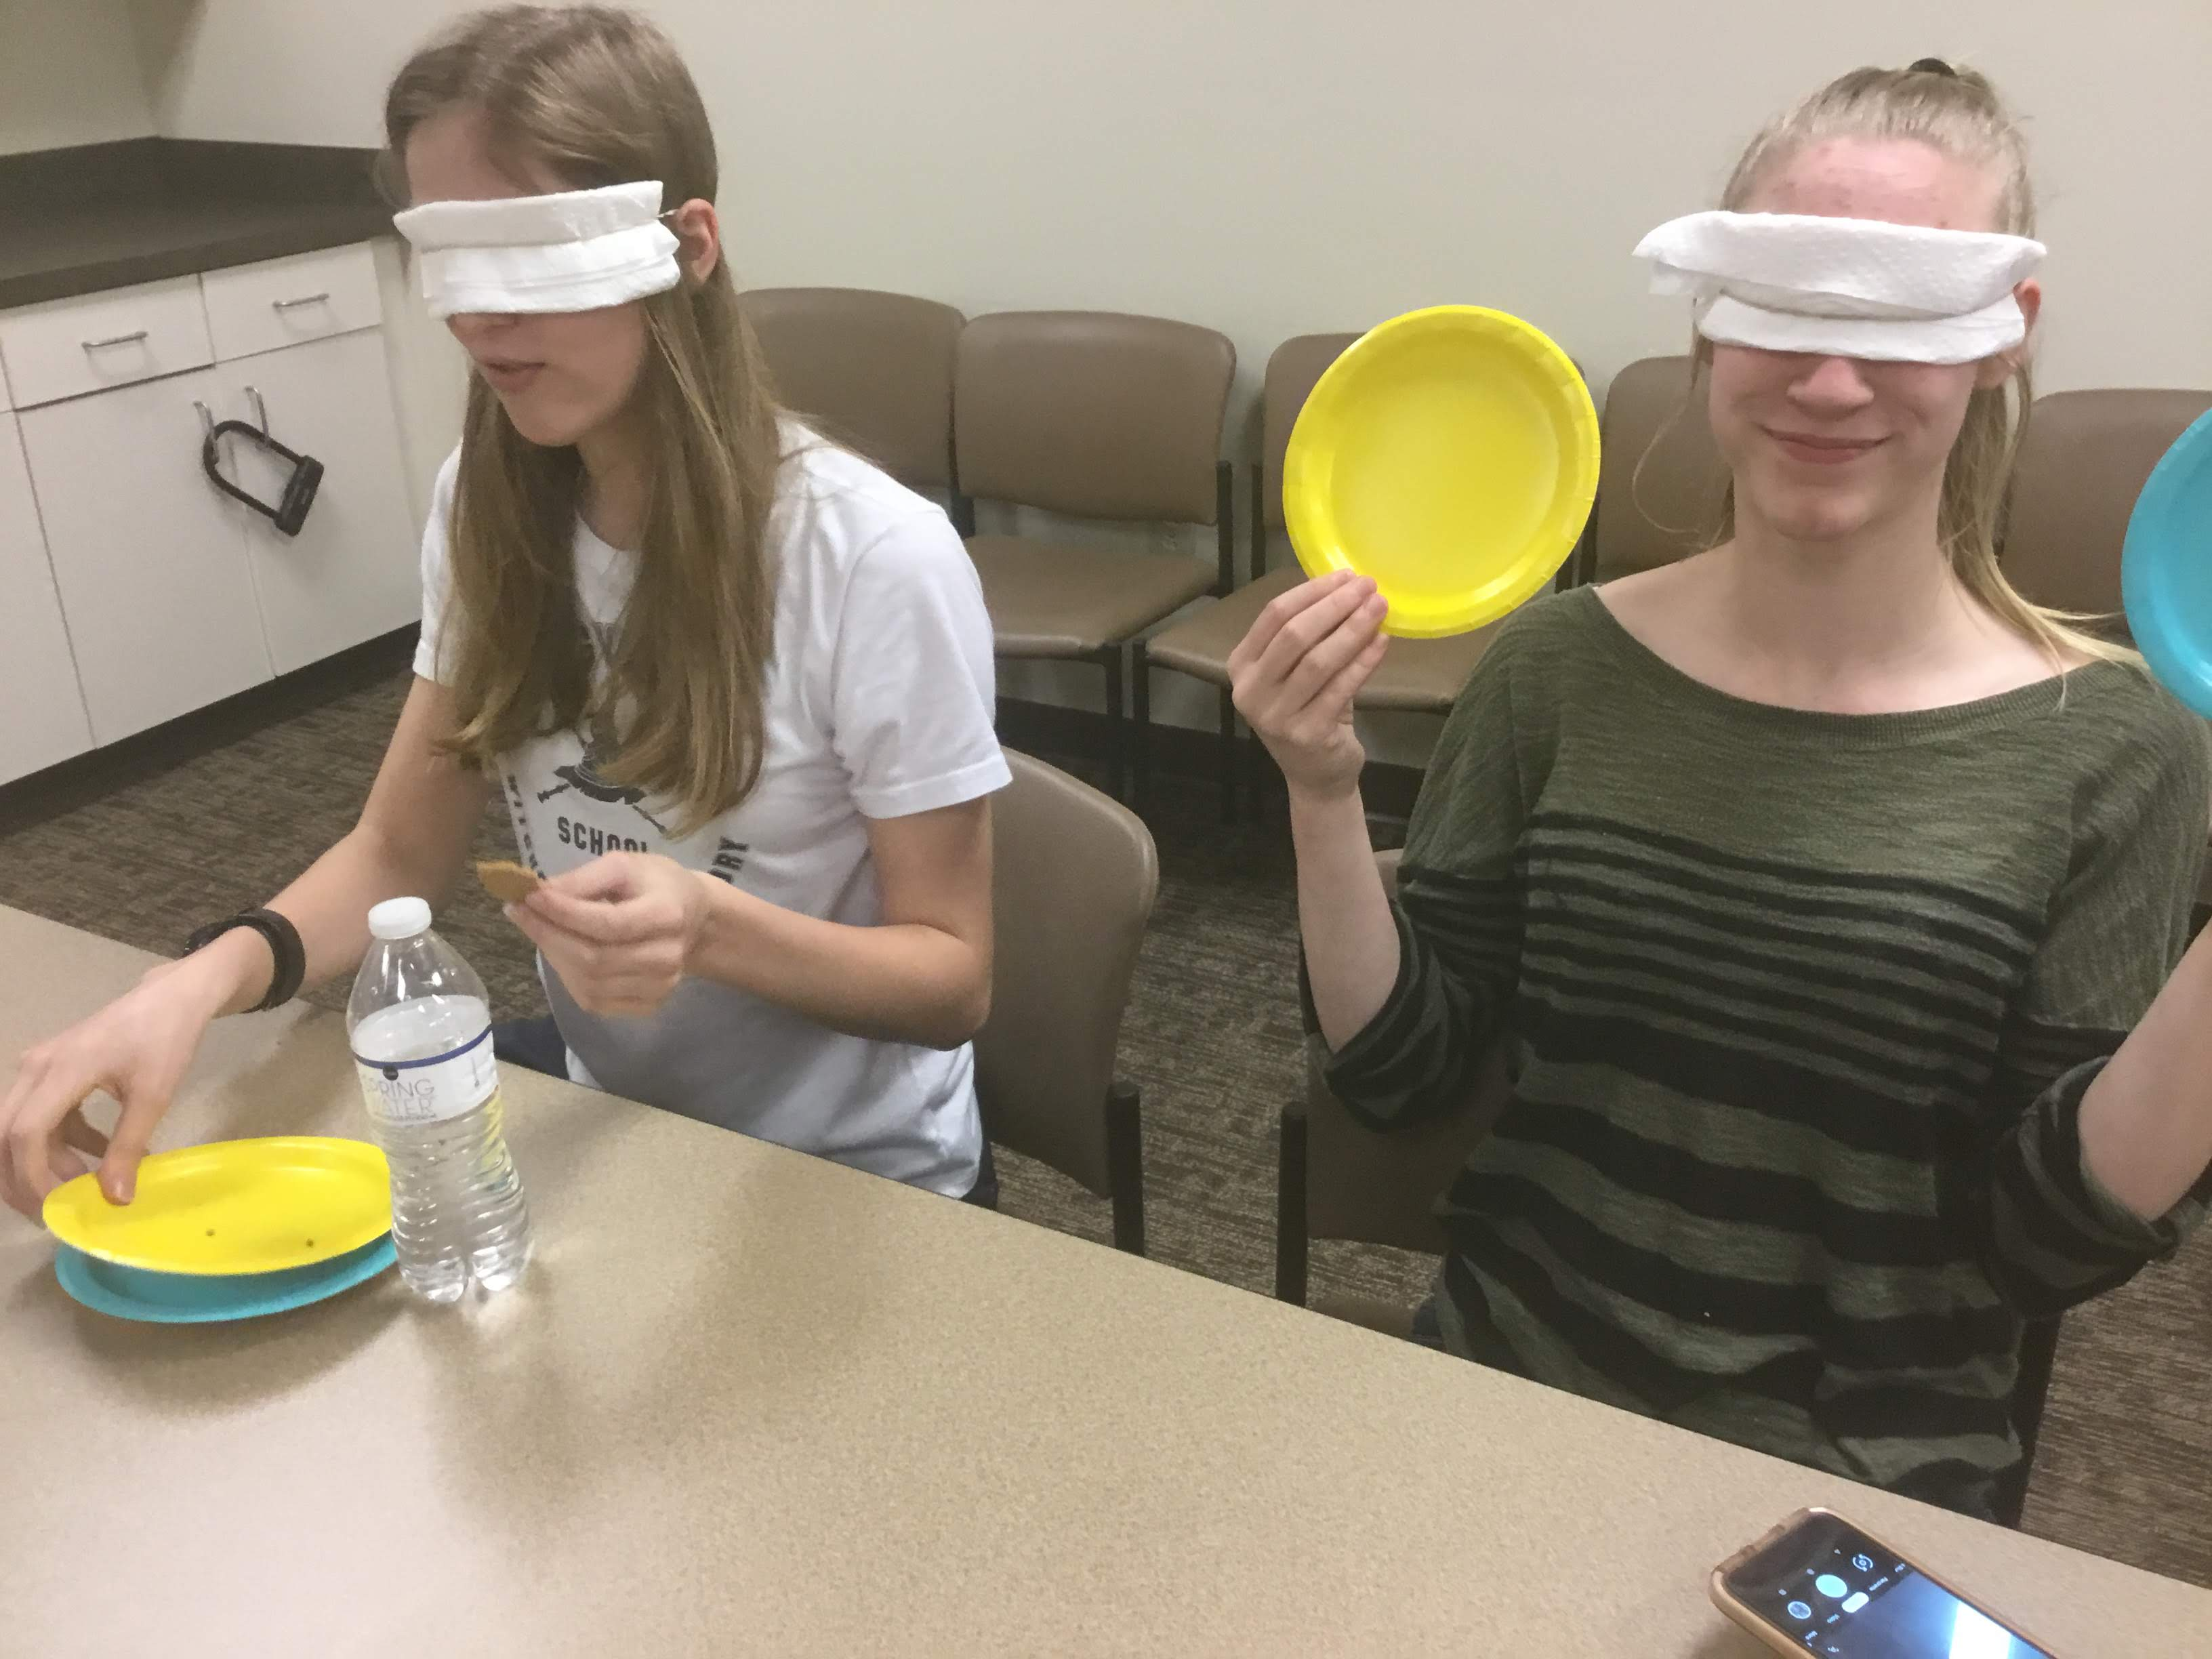 Two blindfolded teens seated at a table; each has two small paper plates in front of them.